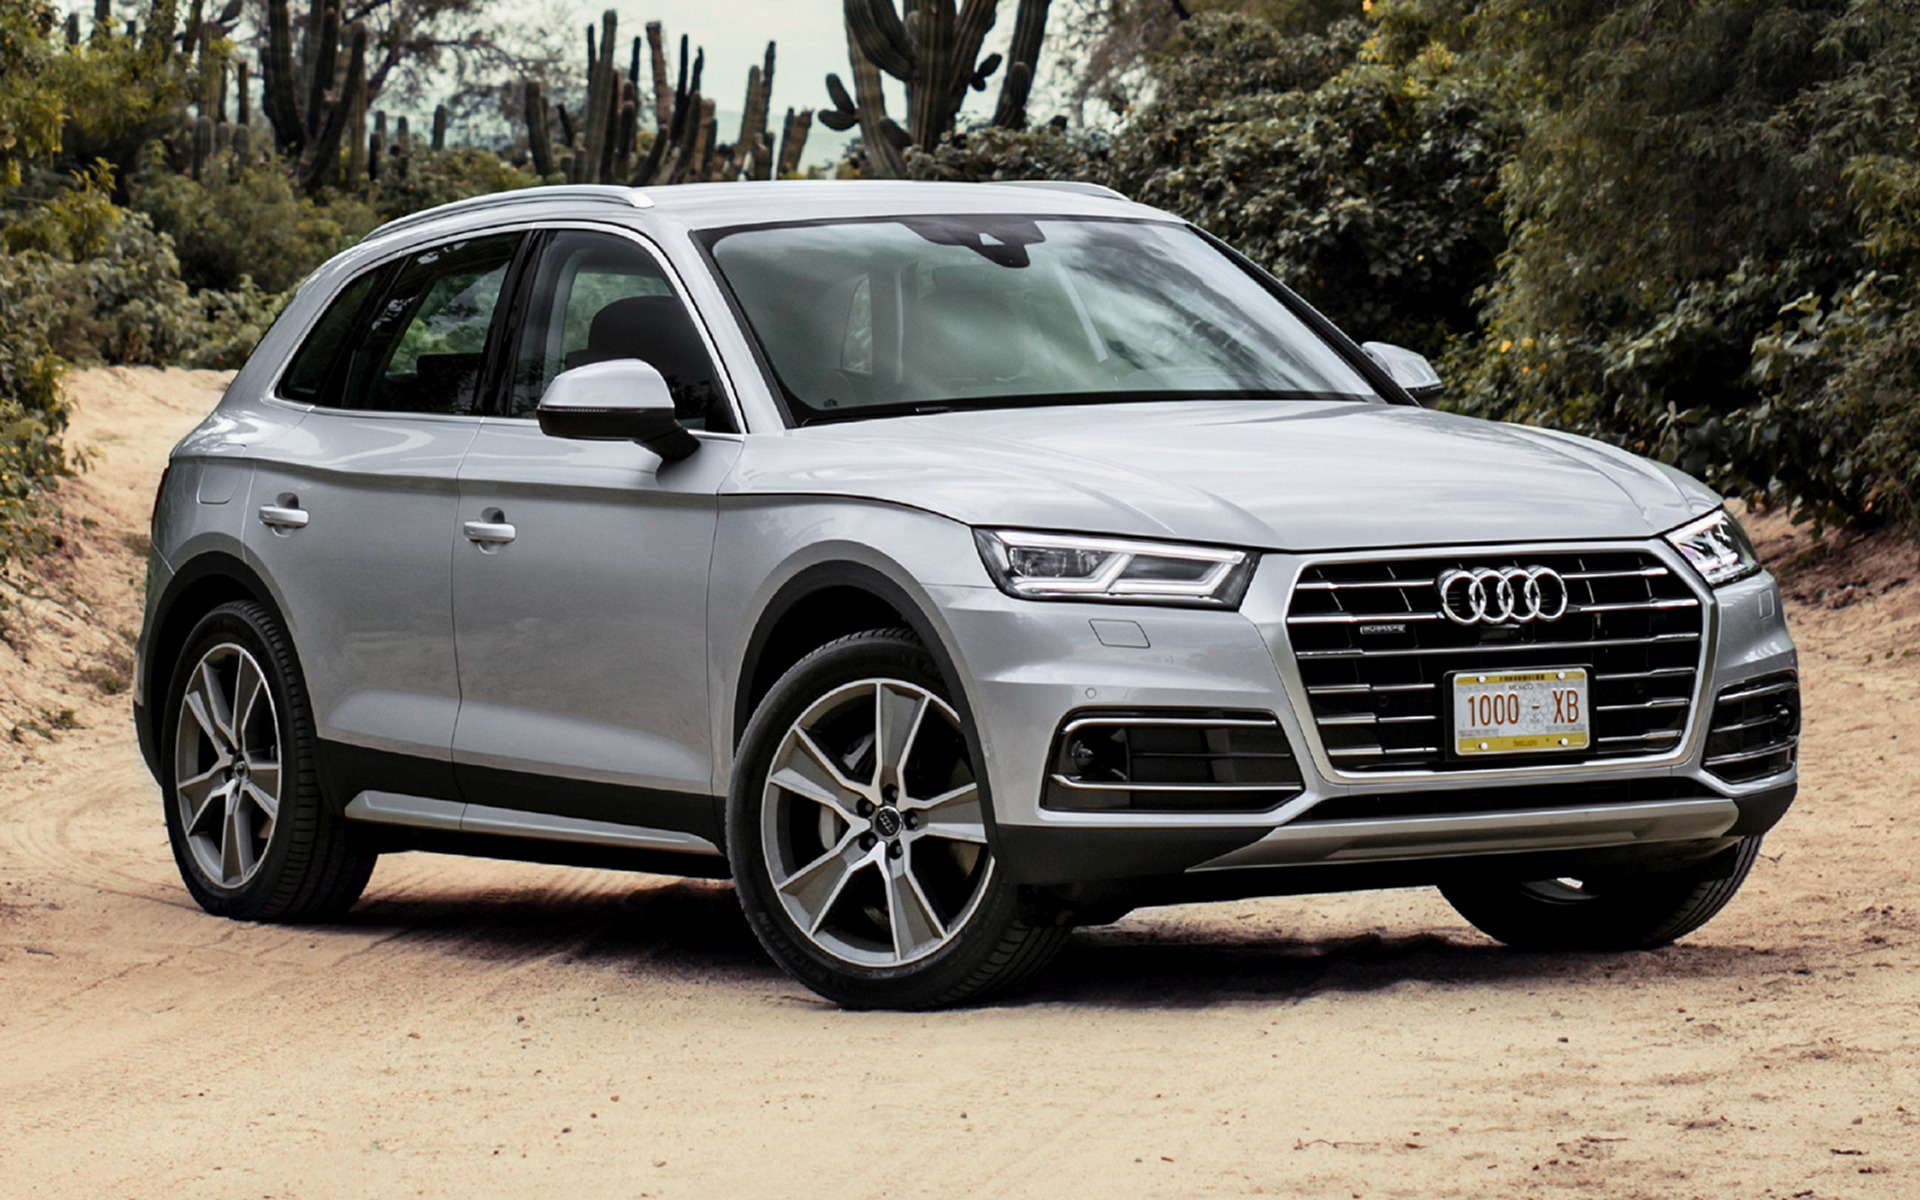 1920x1200 - Audi Q5 Wallpapers 23